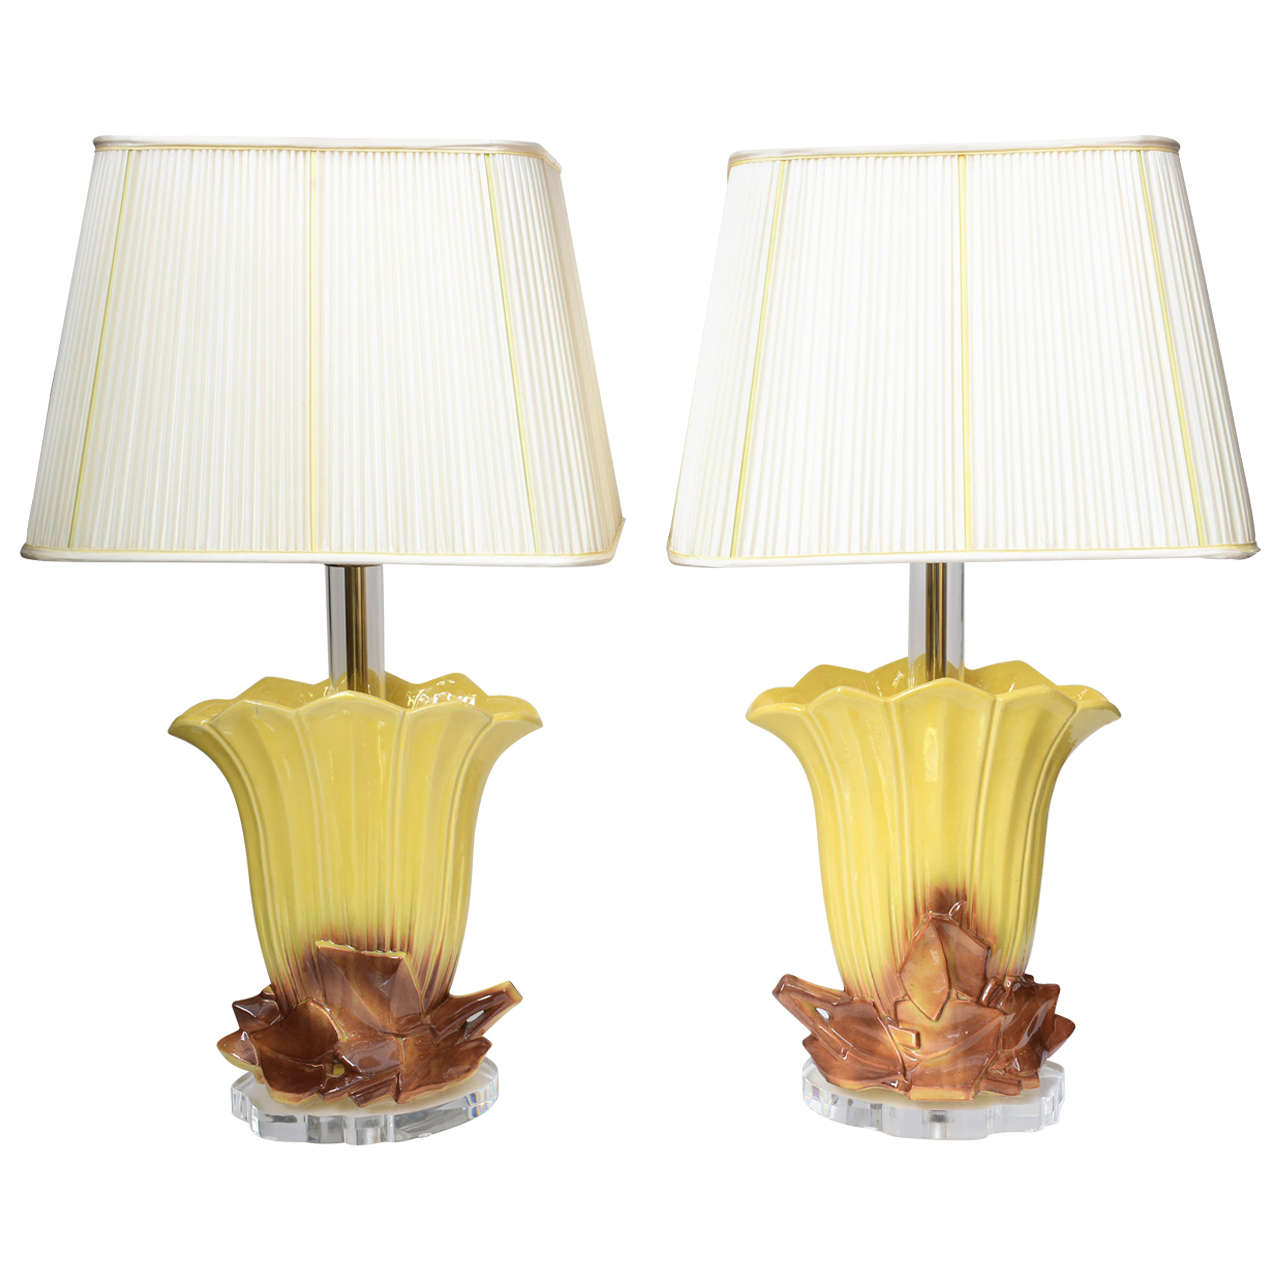 Pair of 1970s Ceramic and Lucite Table Lamps